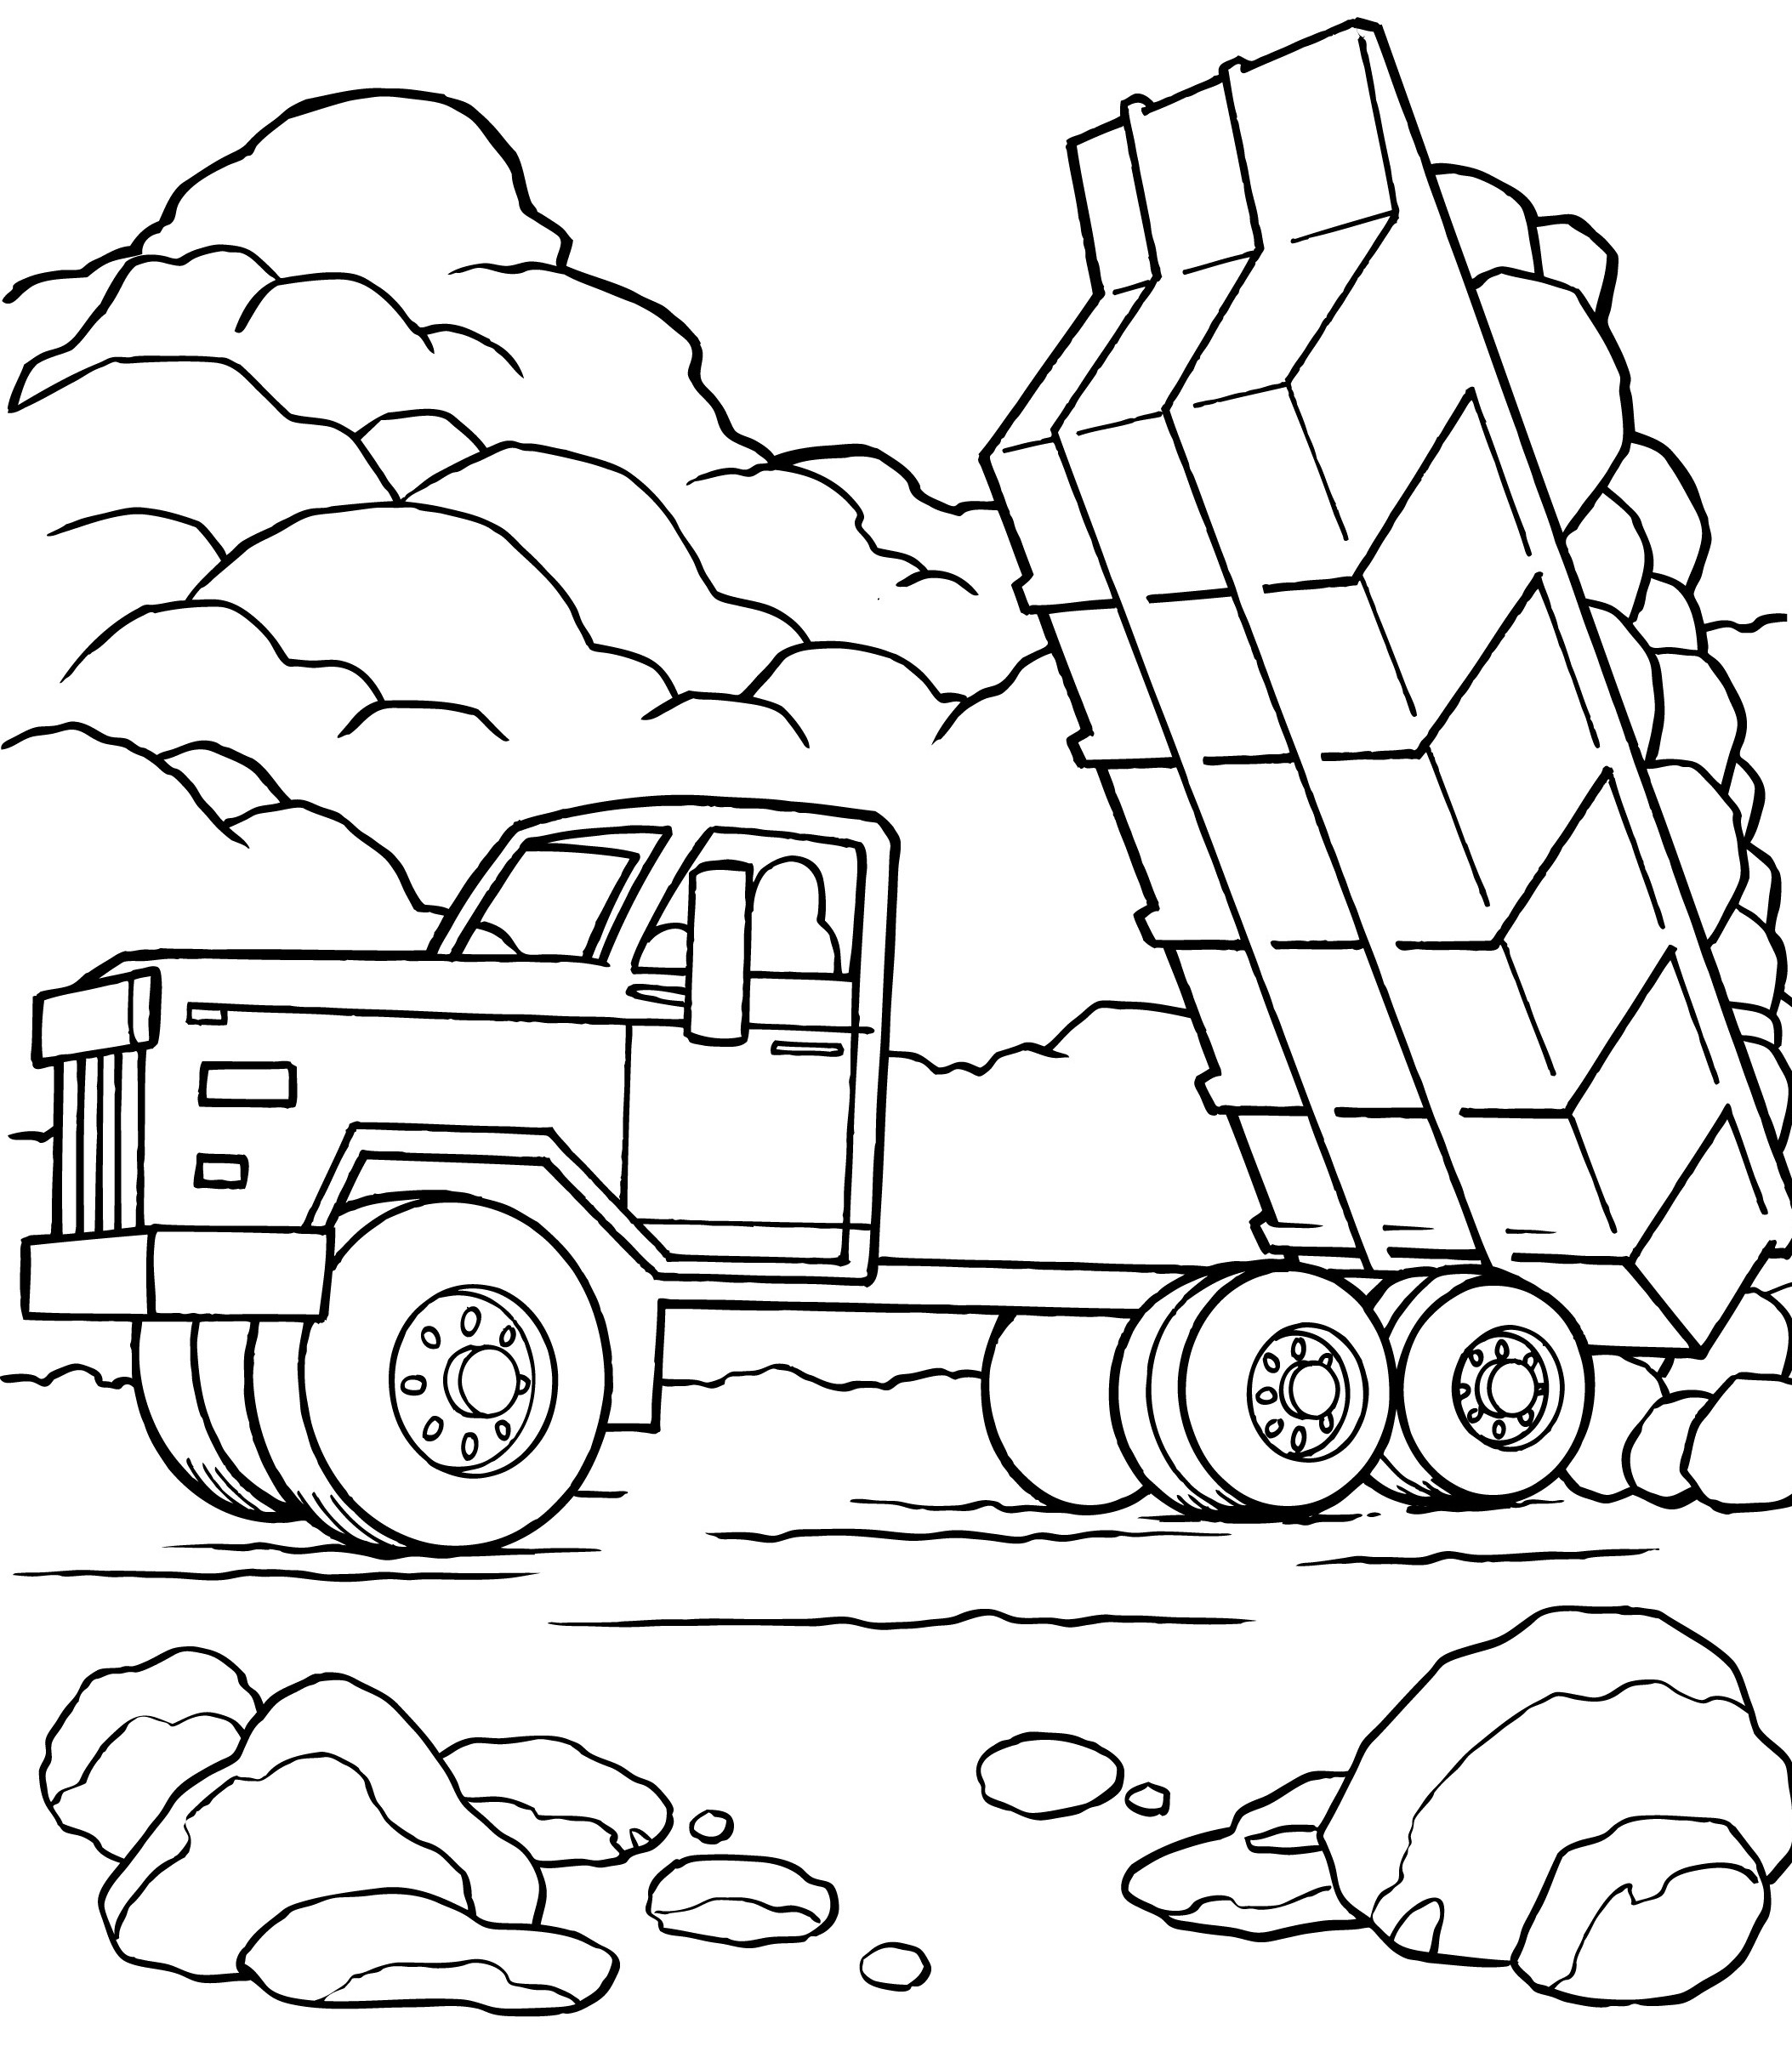 Fire Truck Line Drawing At Getdrawings